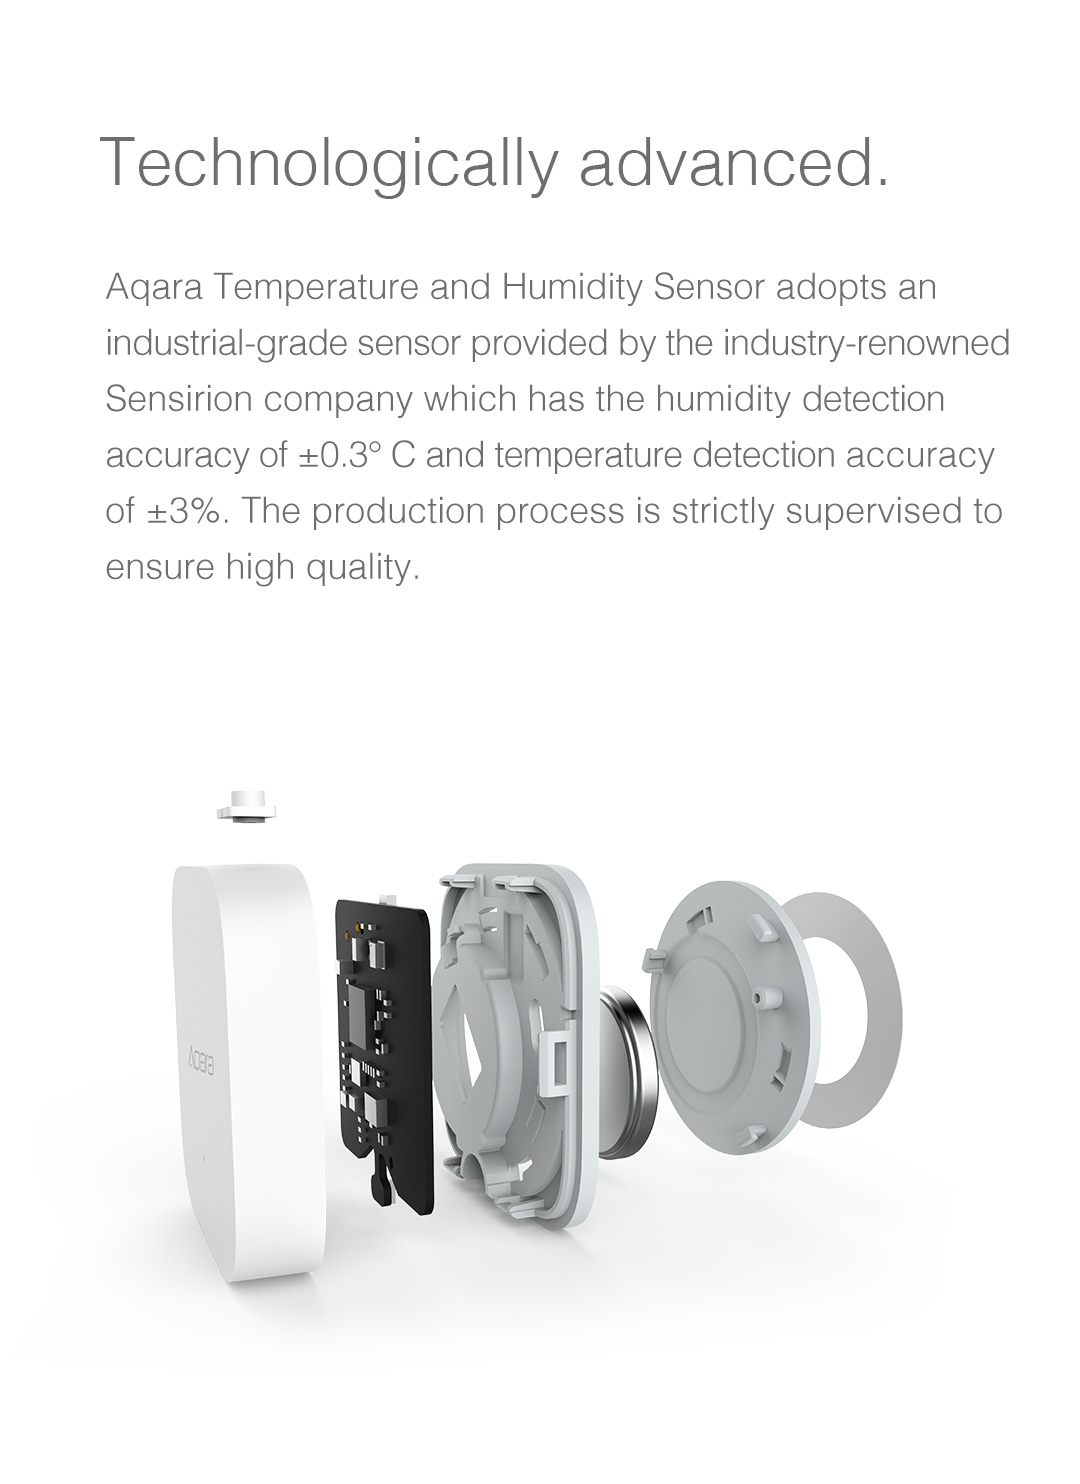 Aqara Temperature/Humidity detector adopts an industrial-grade sensor with high detection accuracy